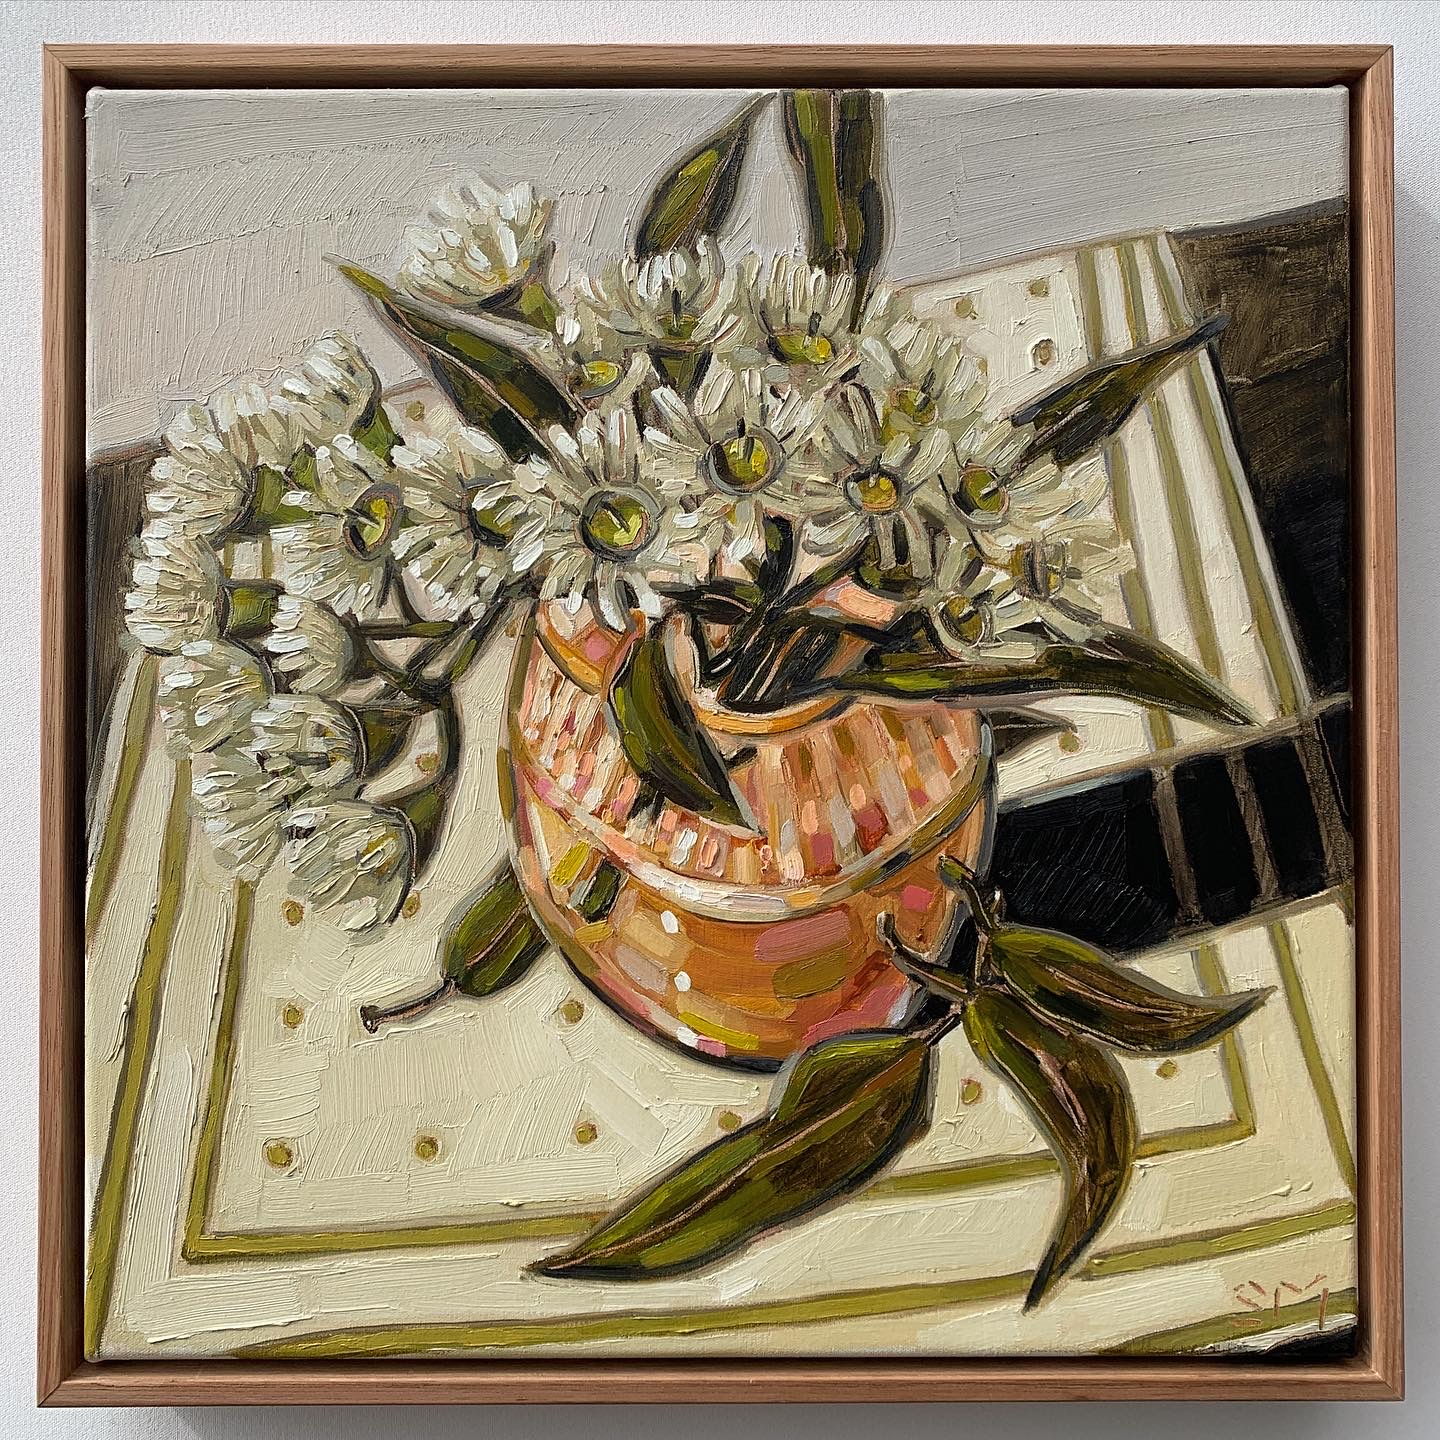 sam michelle 'blossoms & peach vase' 43x